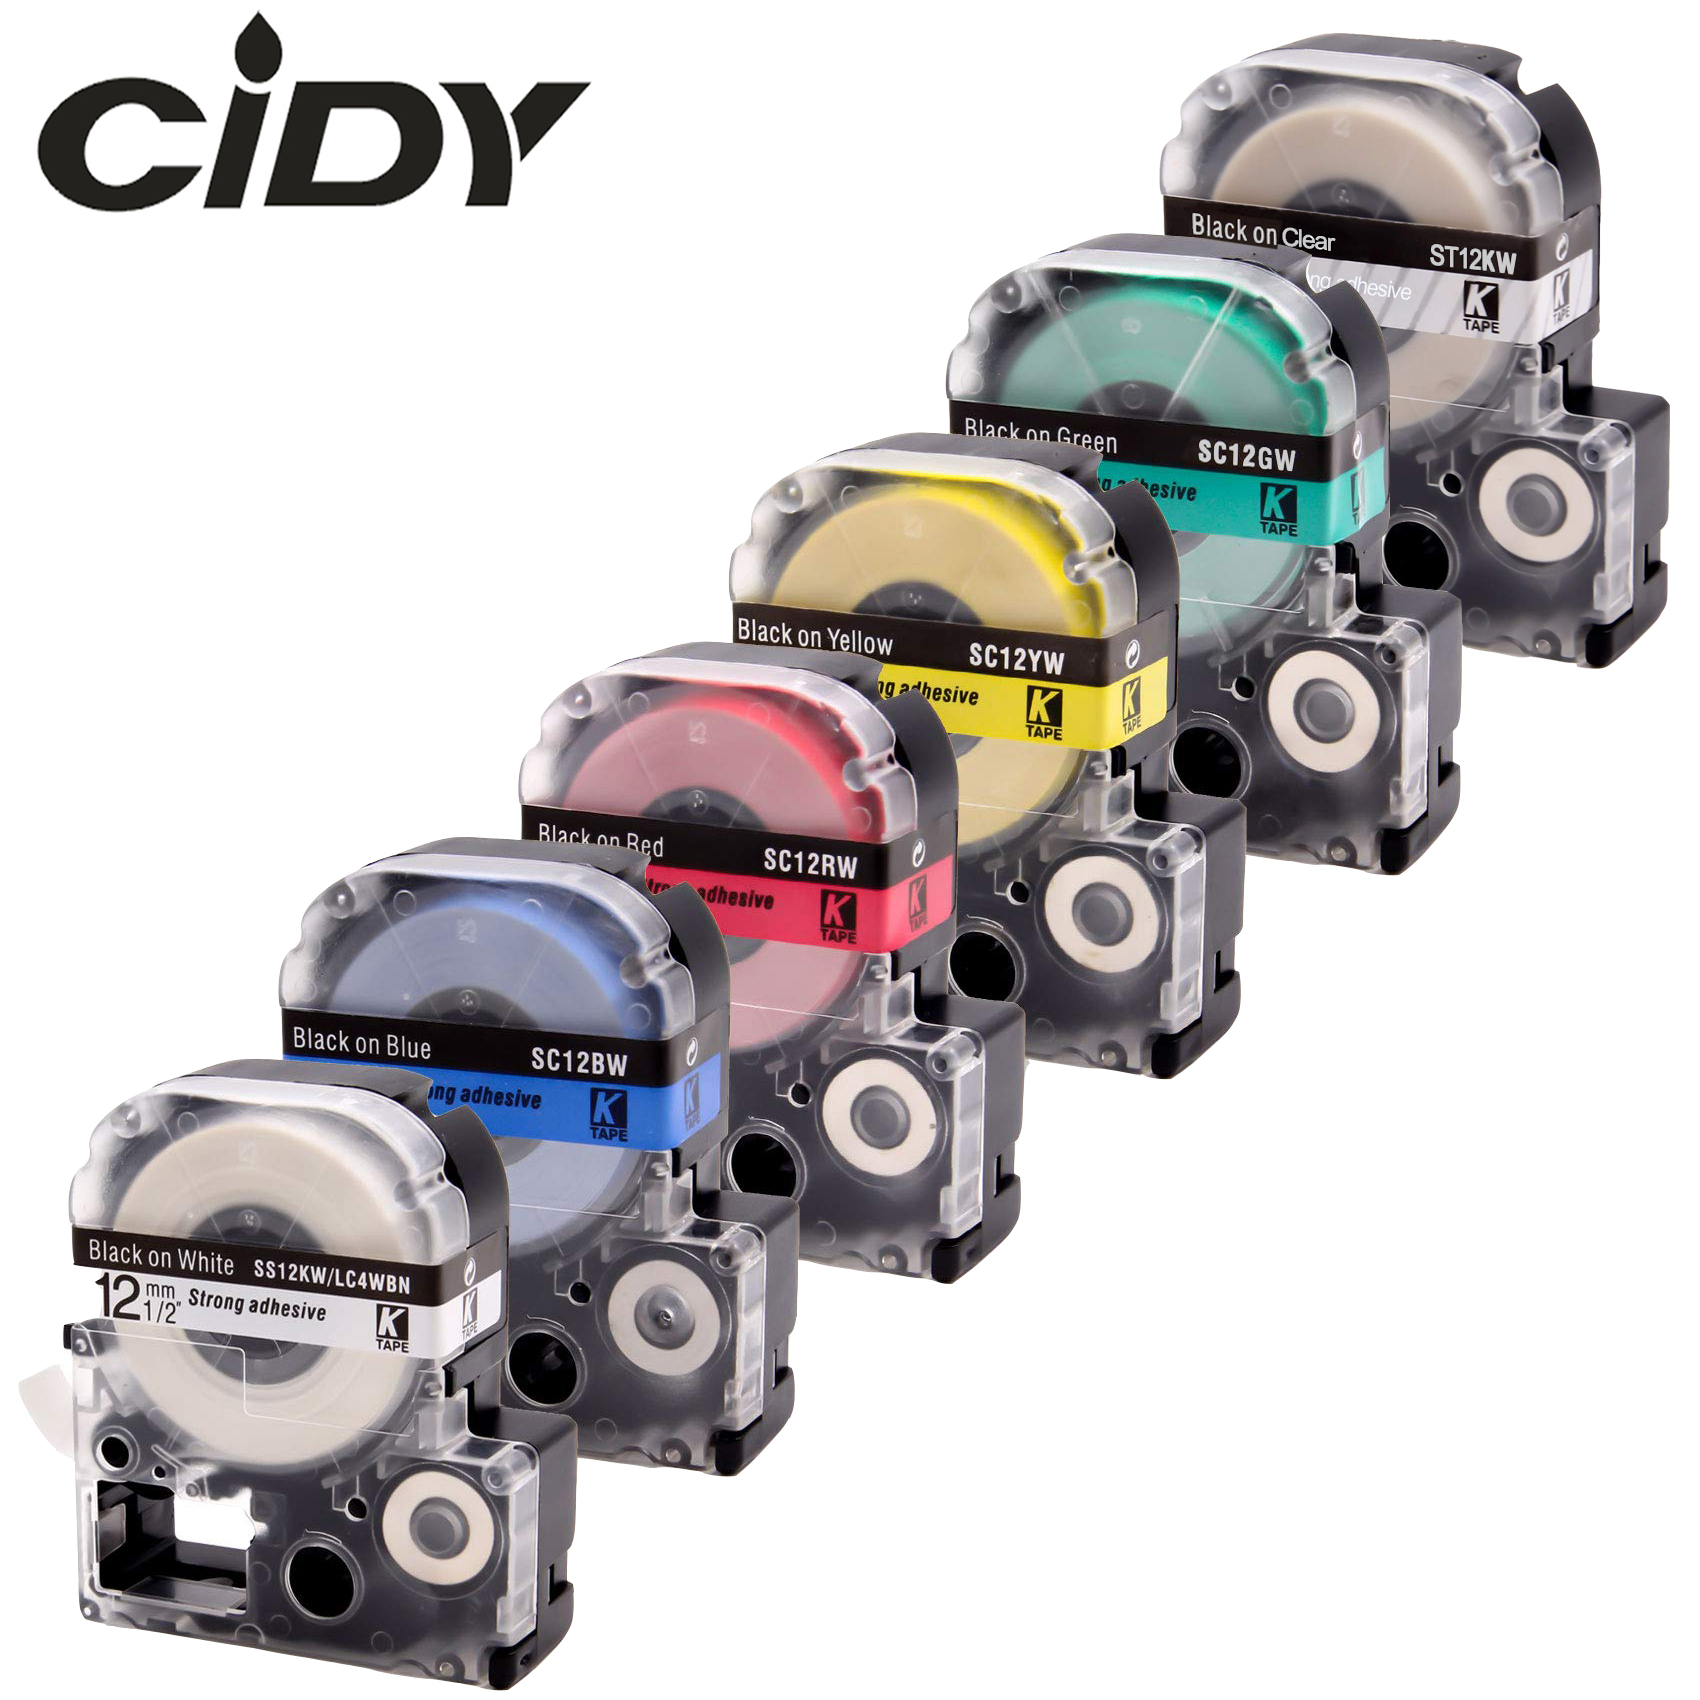 CIDY 6pcs 12MM ST12KW SS12KW SC12GW SC12YW SC12BW SC12RW Laminated Tape For Kingjim/epson Label Maker LW300 LW400 SR150 LW-600P